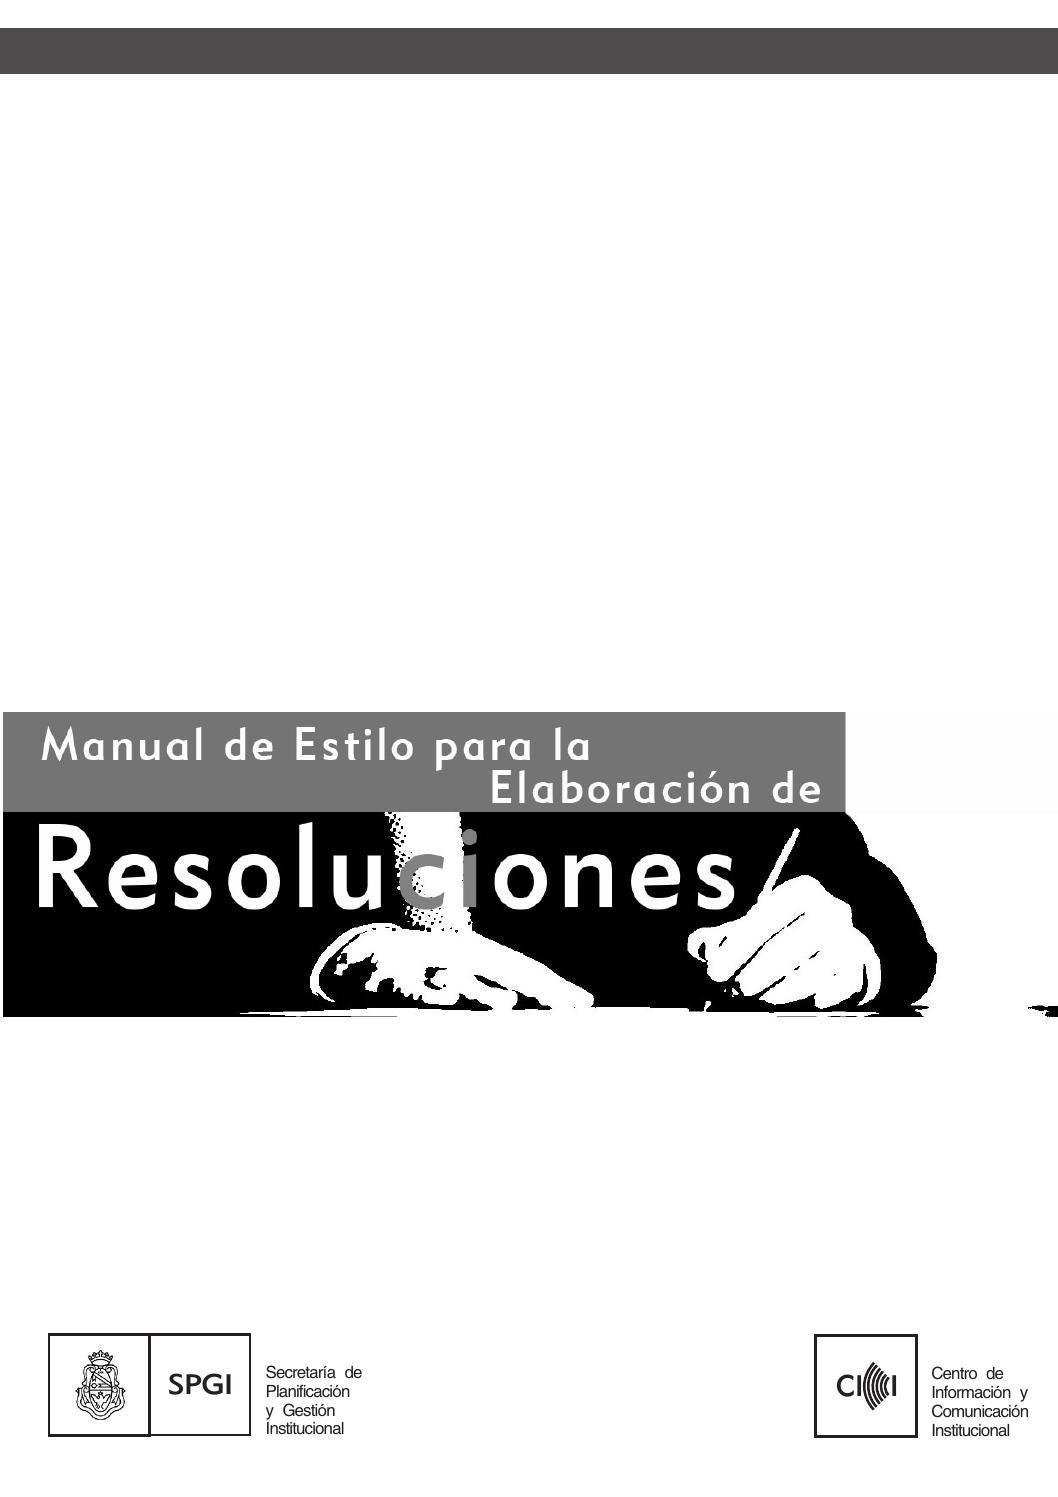 Manual de Estilo para la Elaboración de Resoluciones by SGI UNC - issuu